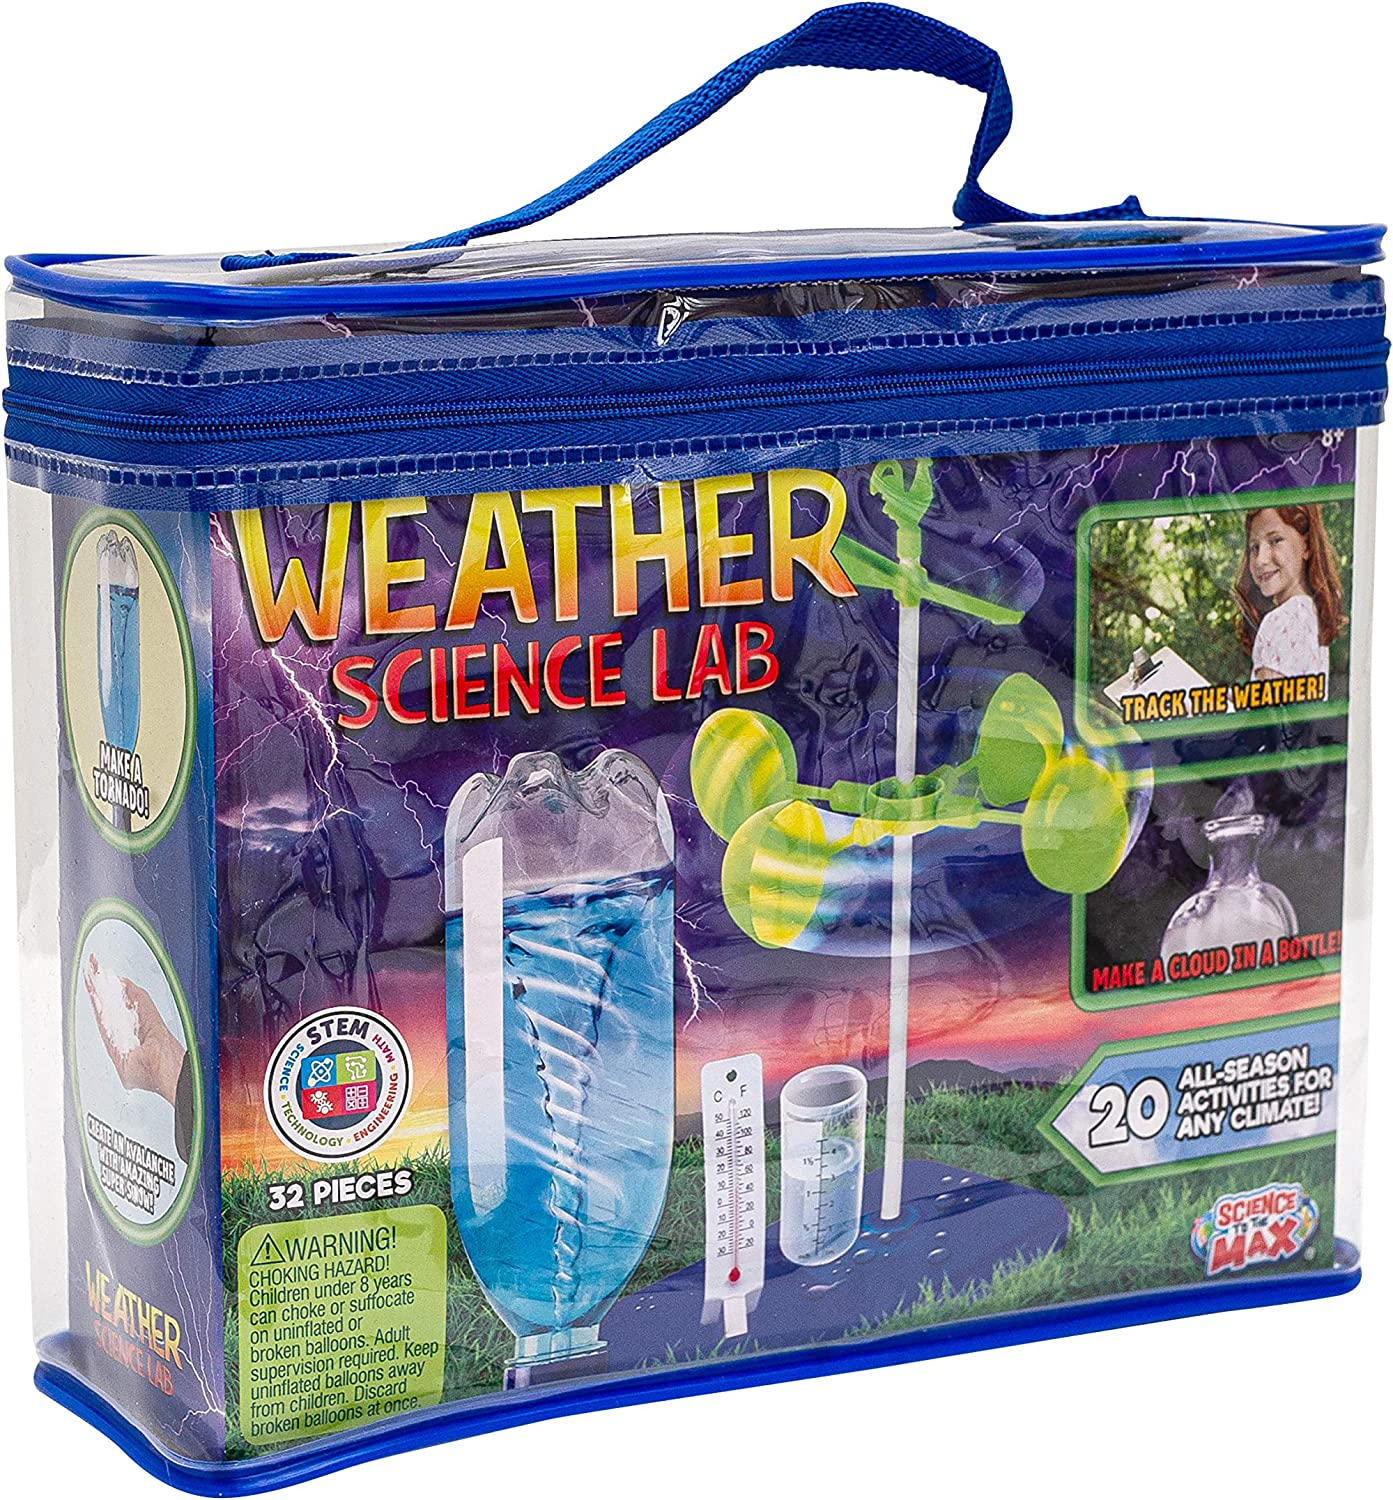 Be Amazing! Toys Weather Science Lab - Kids Weather Science Kit with 20 All Season Science Projects - Educational STEM Science Kits for Boys & Girls - Scientific Meteorology Toys for Children Age 8+: Toys & Games